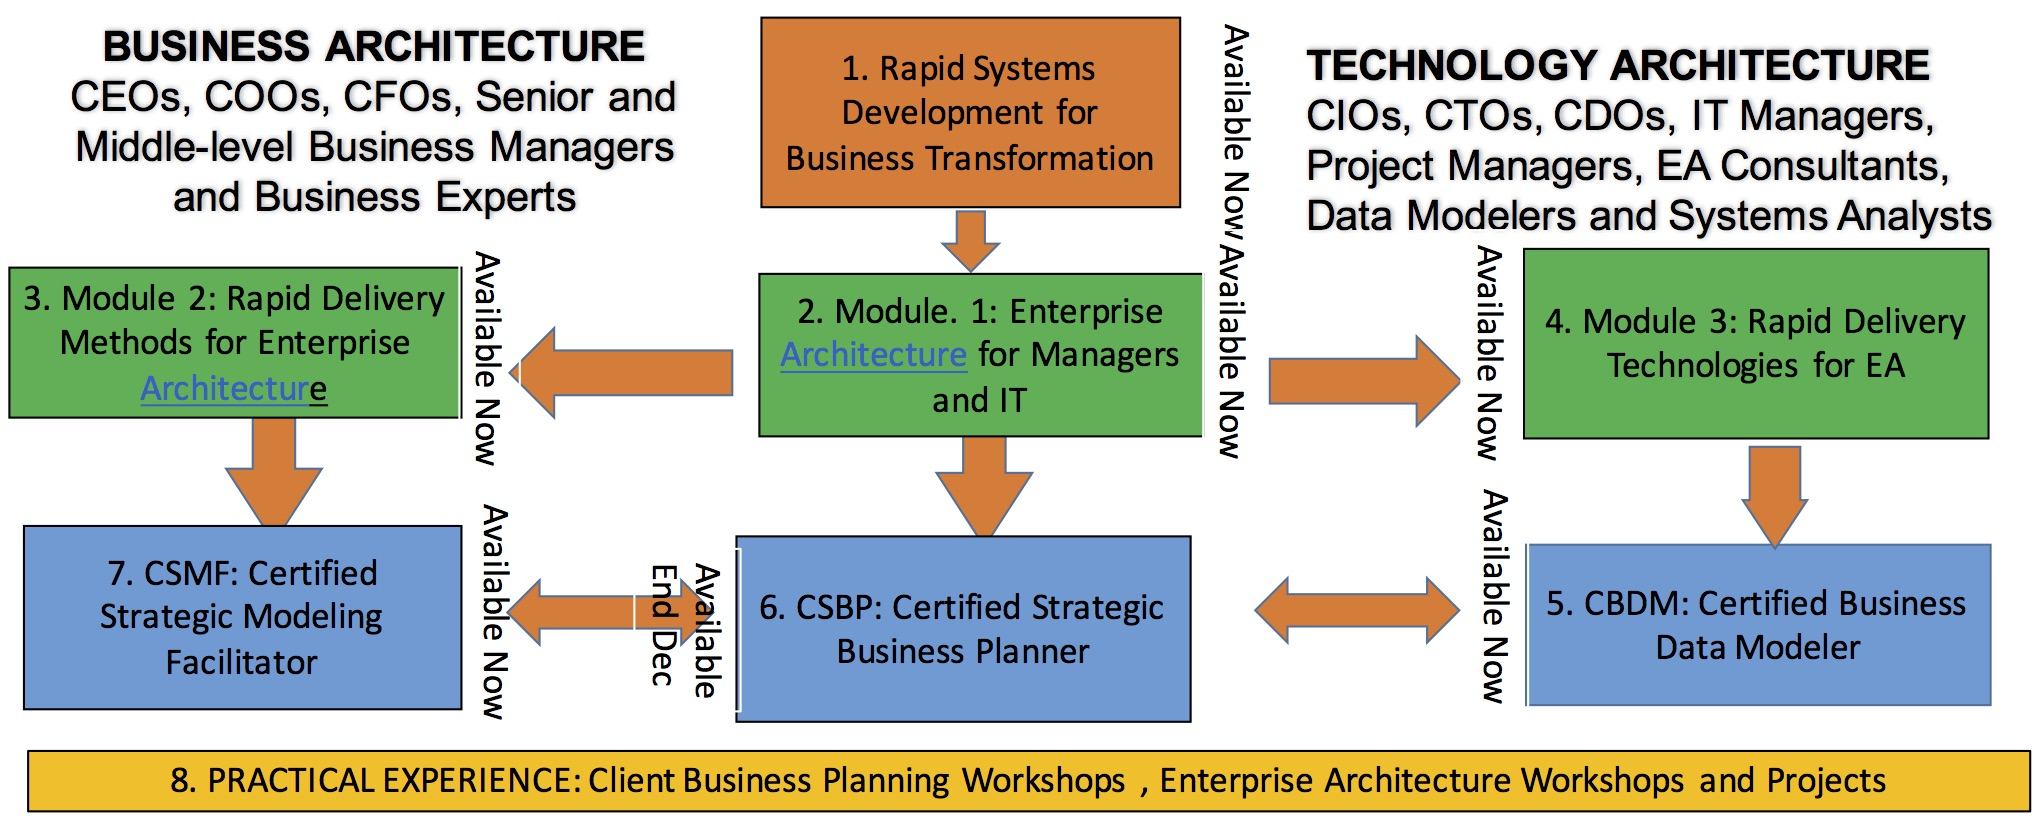 Clive finkelstein enterprise architecture courses and books figure 1 course roadmap for studentd of video courses on business architecture and technology architecture online course series 1betcityfo Images